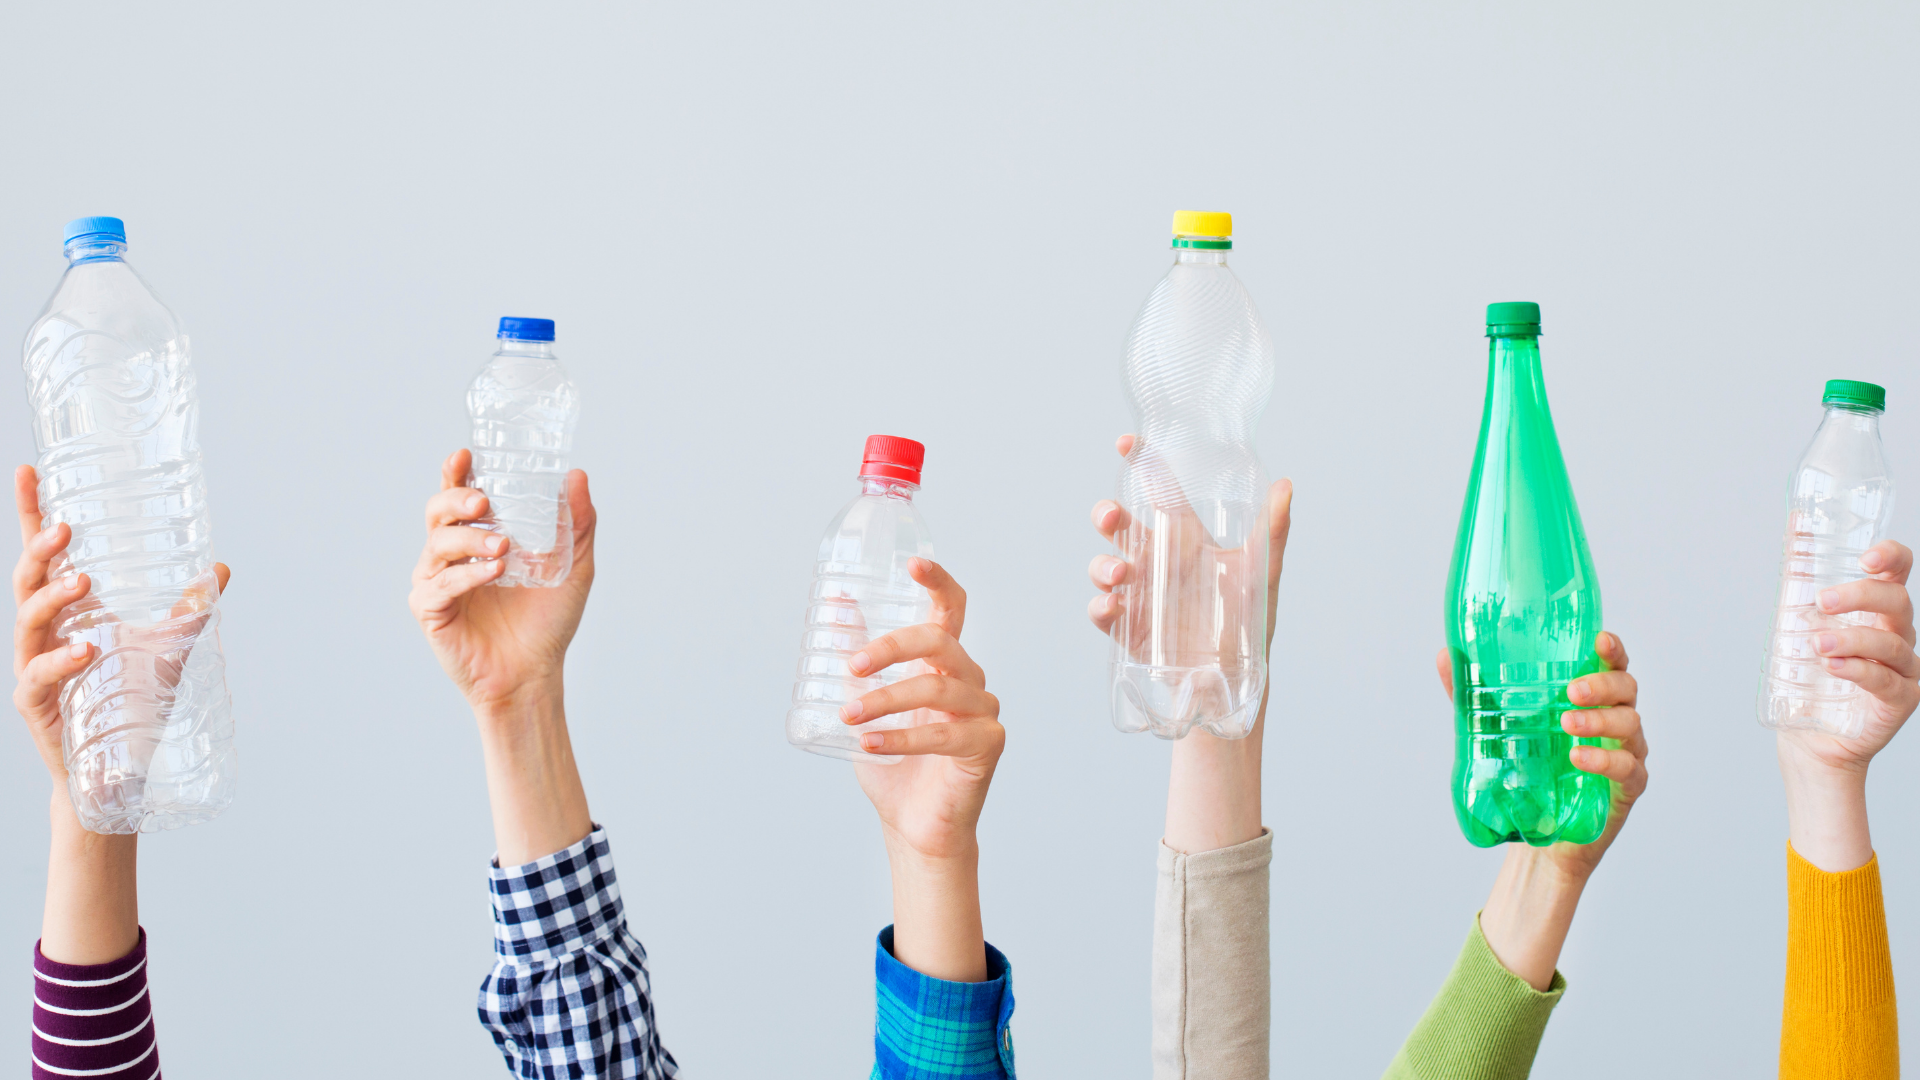 6 individuals holding up 6 different types of plastic bottles in different colours wearing different coloured clothing